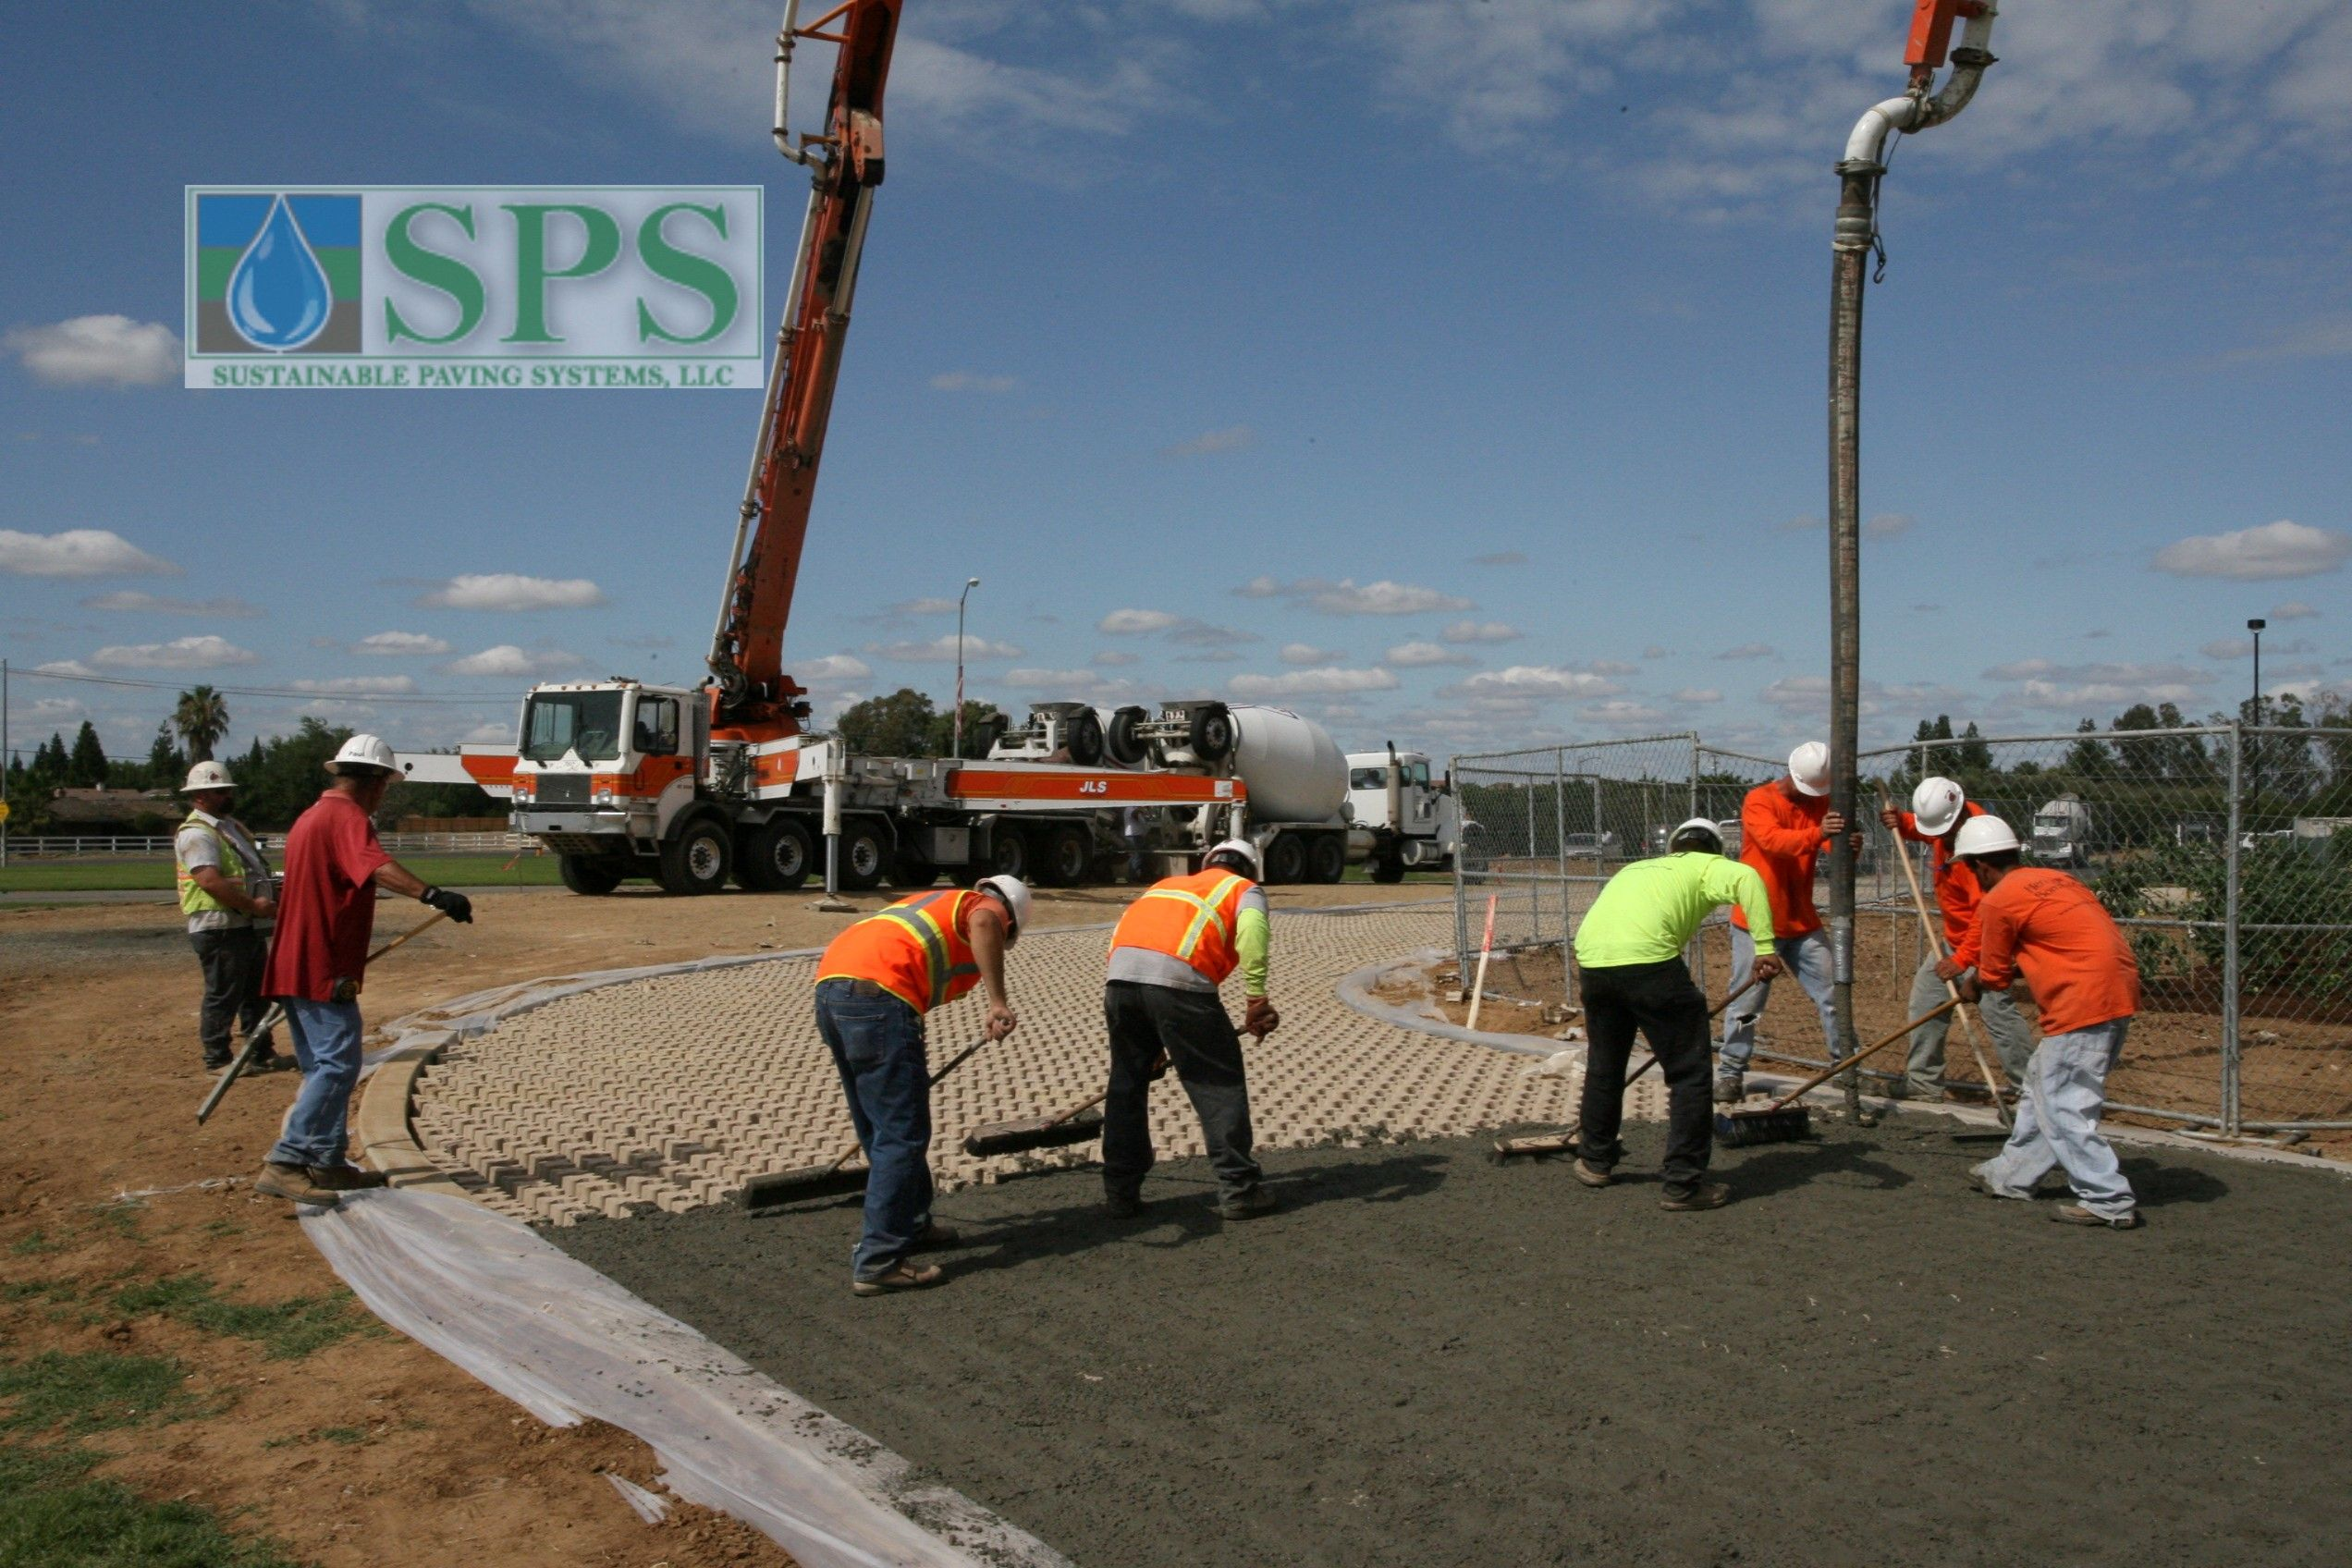 Grasscrete was installed here to provide an emergency vehicle access road that consists of a concrete base with voids created using Molded Pulp Formers that are filled with grass to conceal the underlying structure.